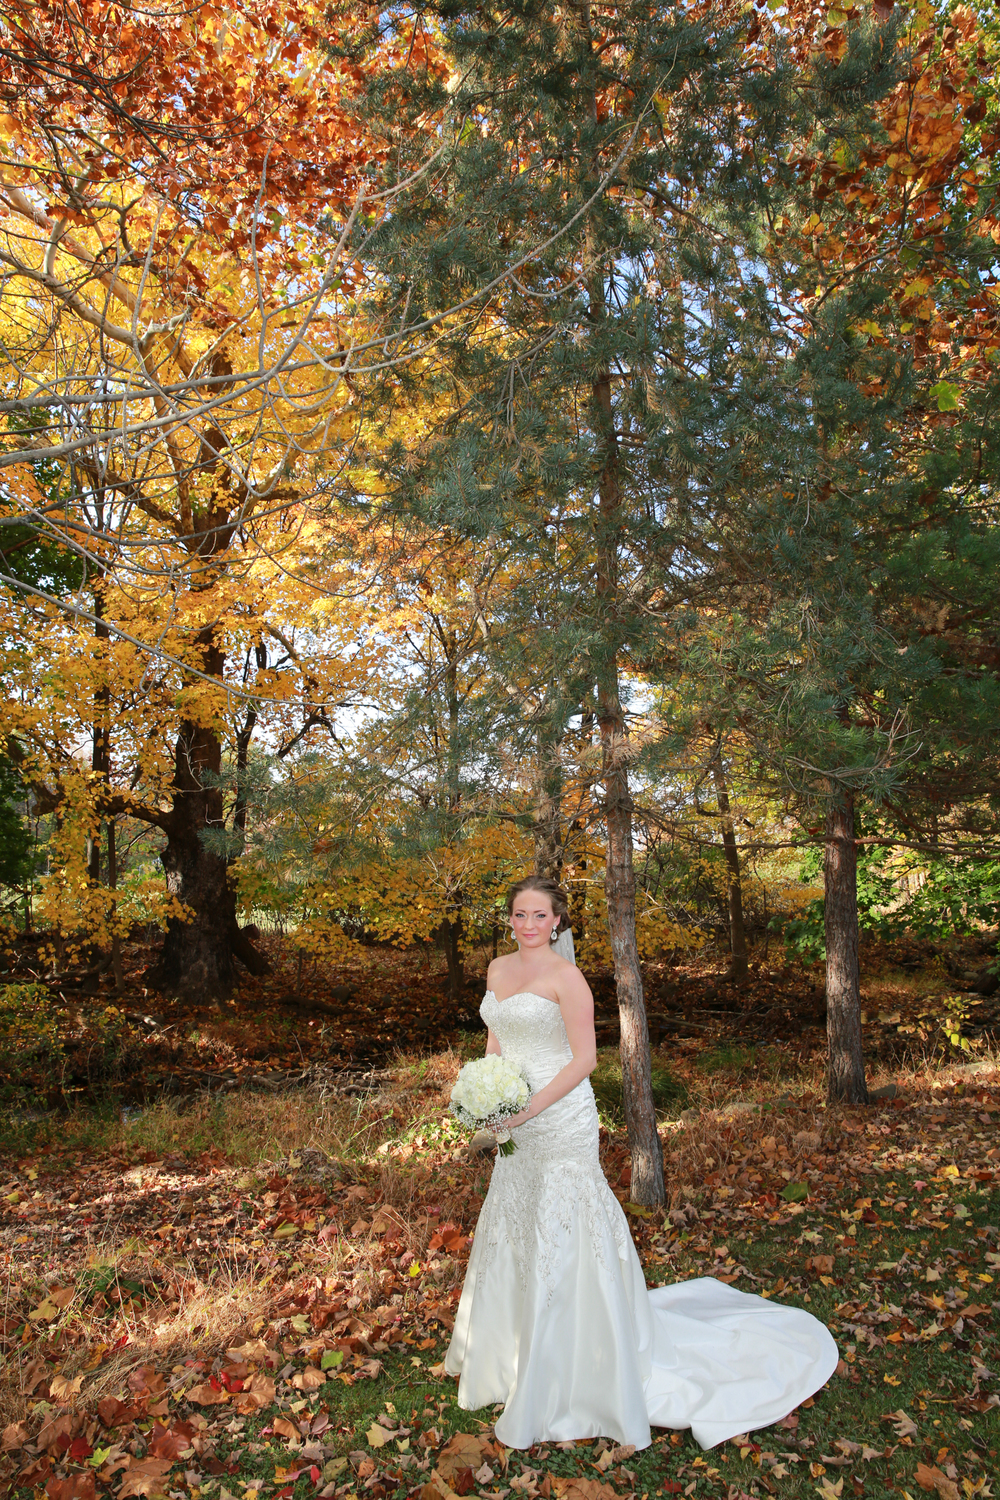 Photo of the perfect fall portrait of the bride.